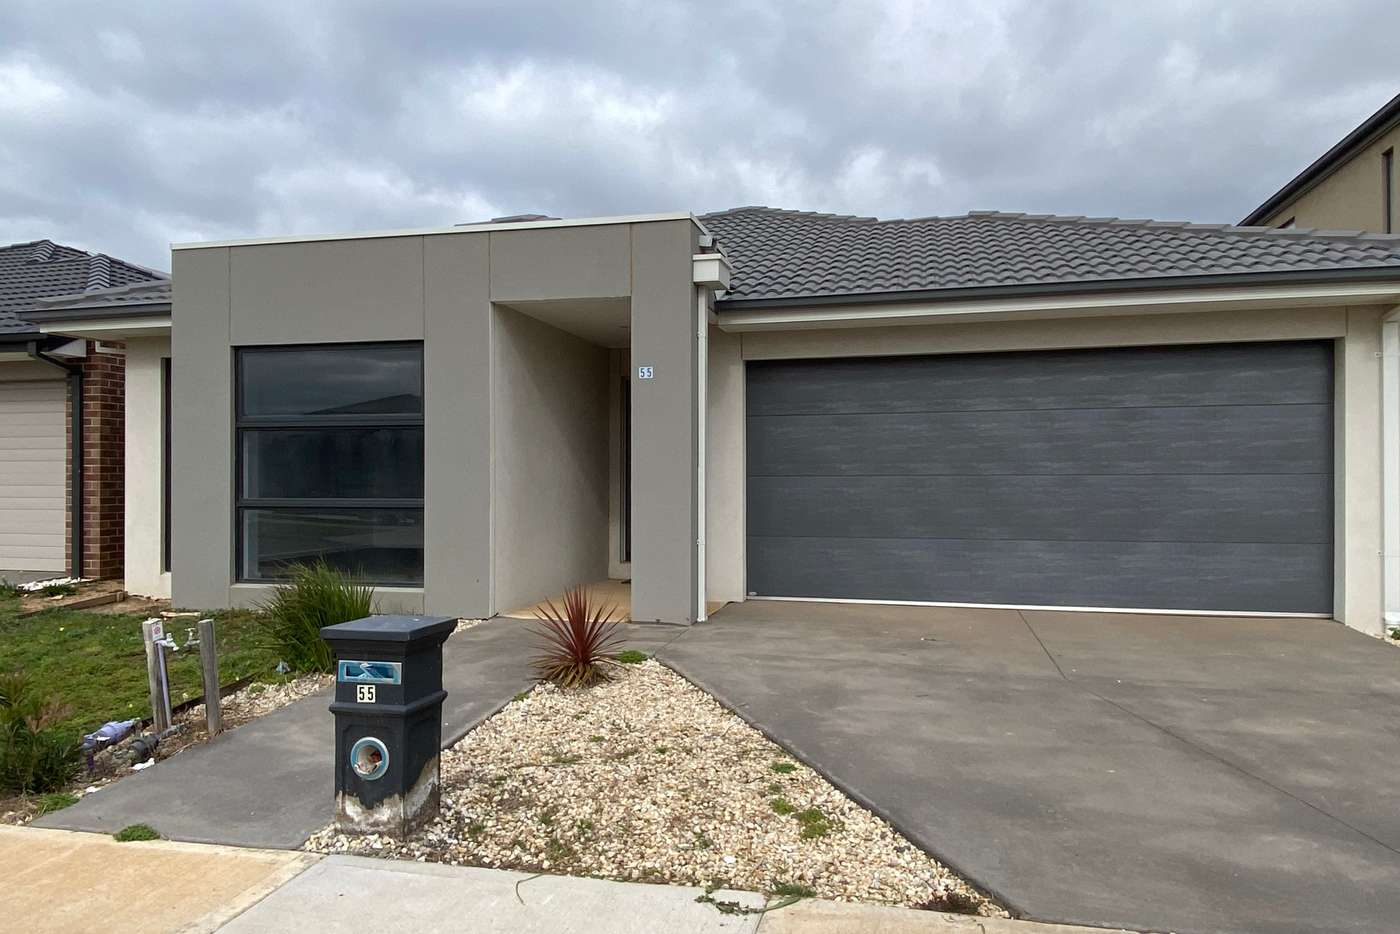 Main view of Homely house listing, 55 Cuttlefish Circuit, Tarneit VIC 3029